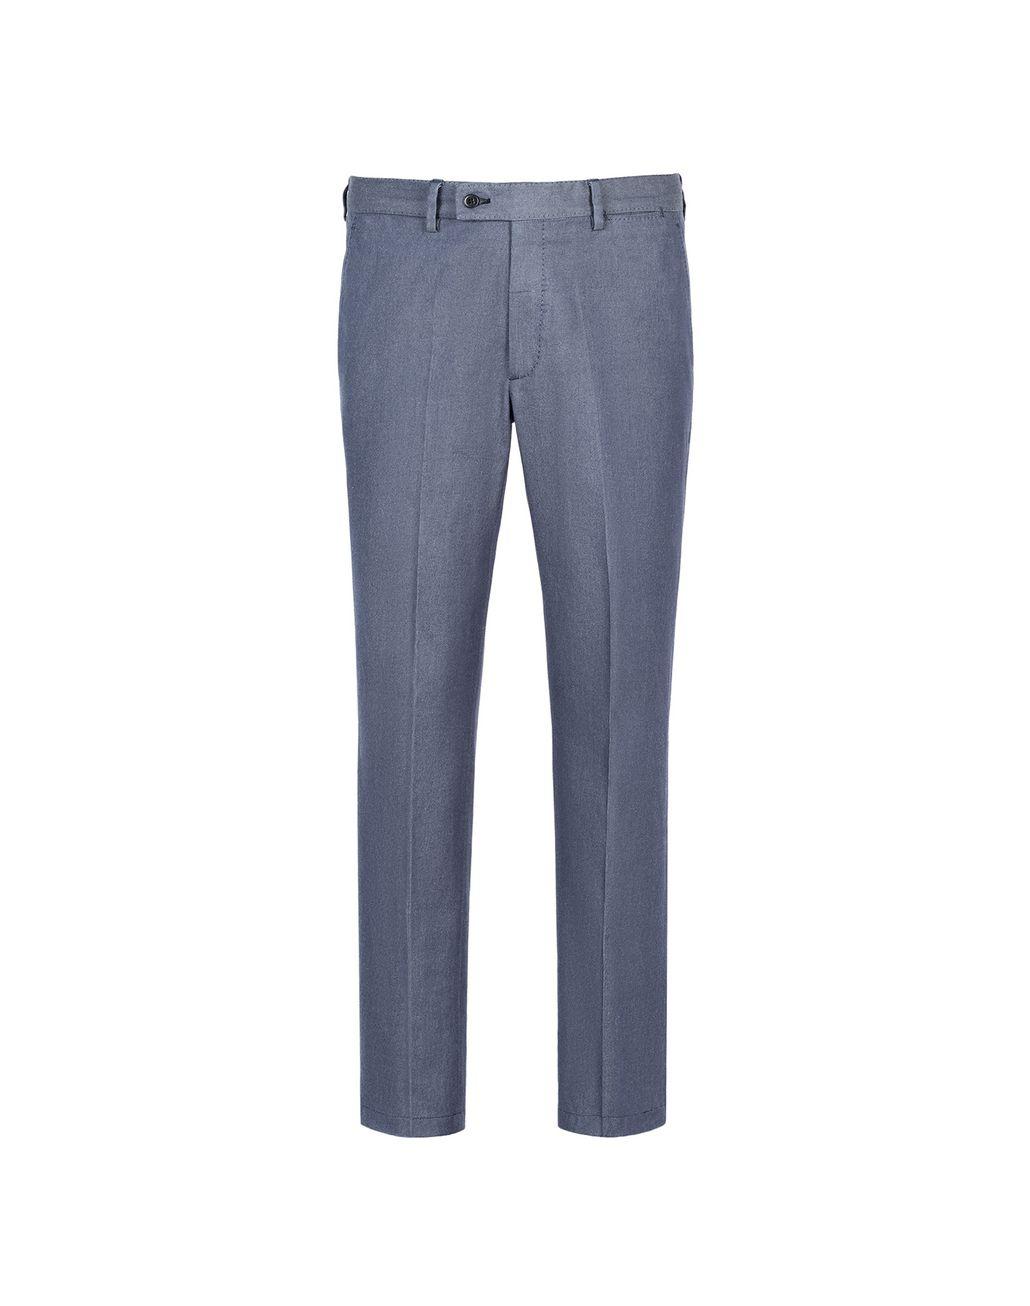 BRIONI Denim Blue Tignes Chino Trousers Trousers U f